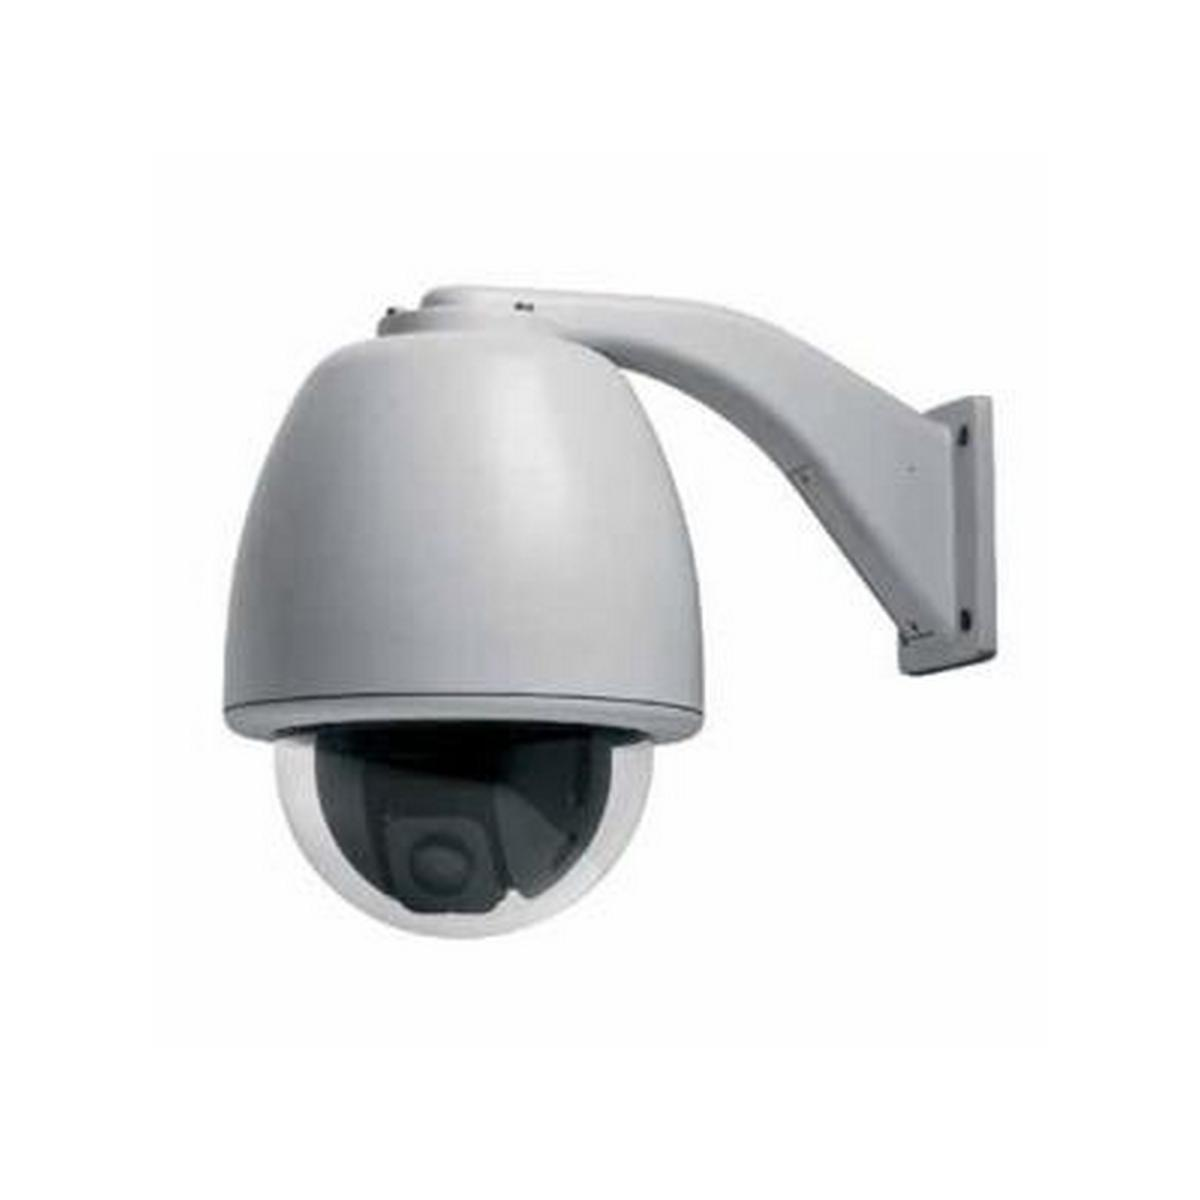 G.E. UVP-CE3-D27N   Ultraview 27X D/N PTZ , WDR, Wall mount, outdoor, clear lower dome